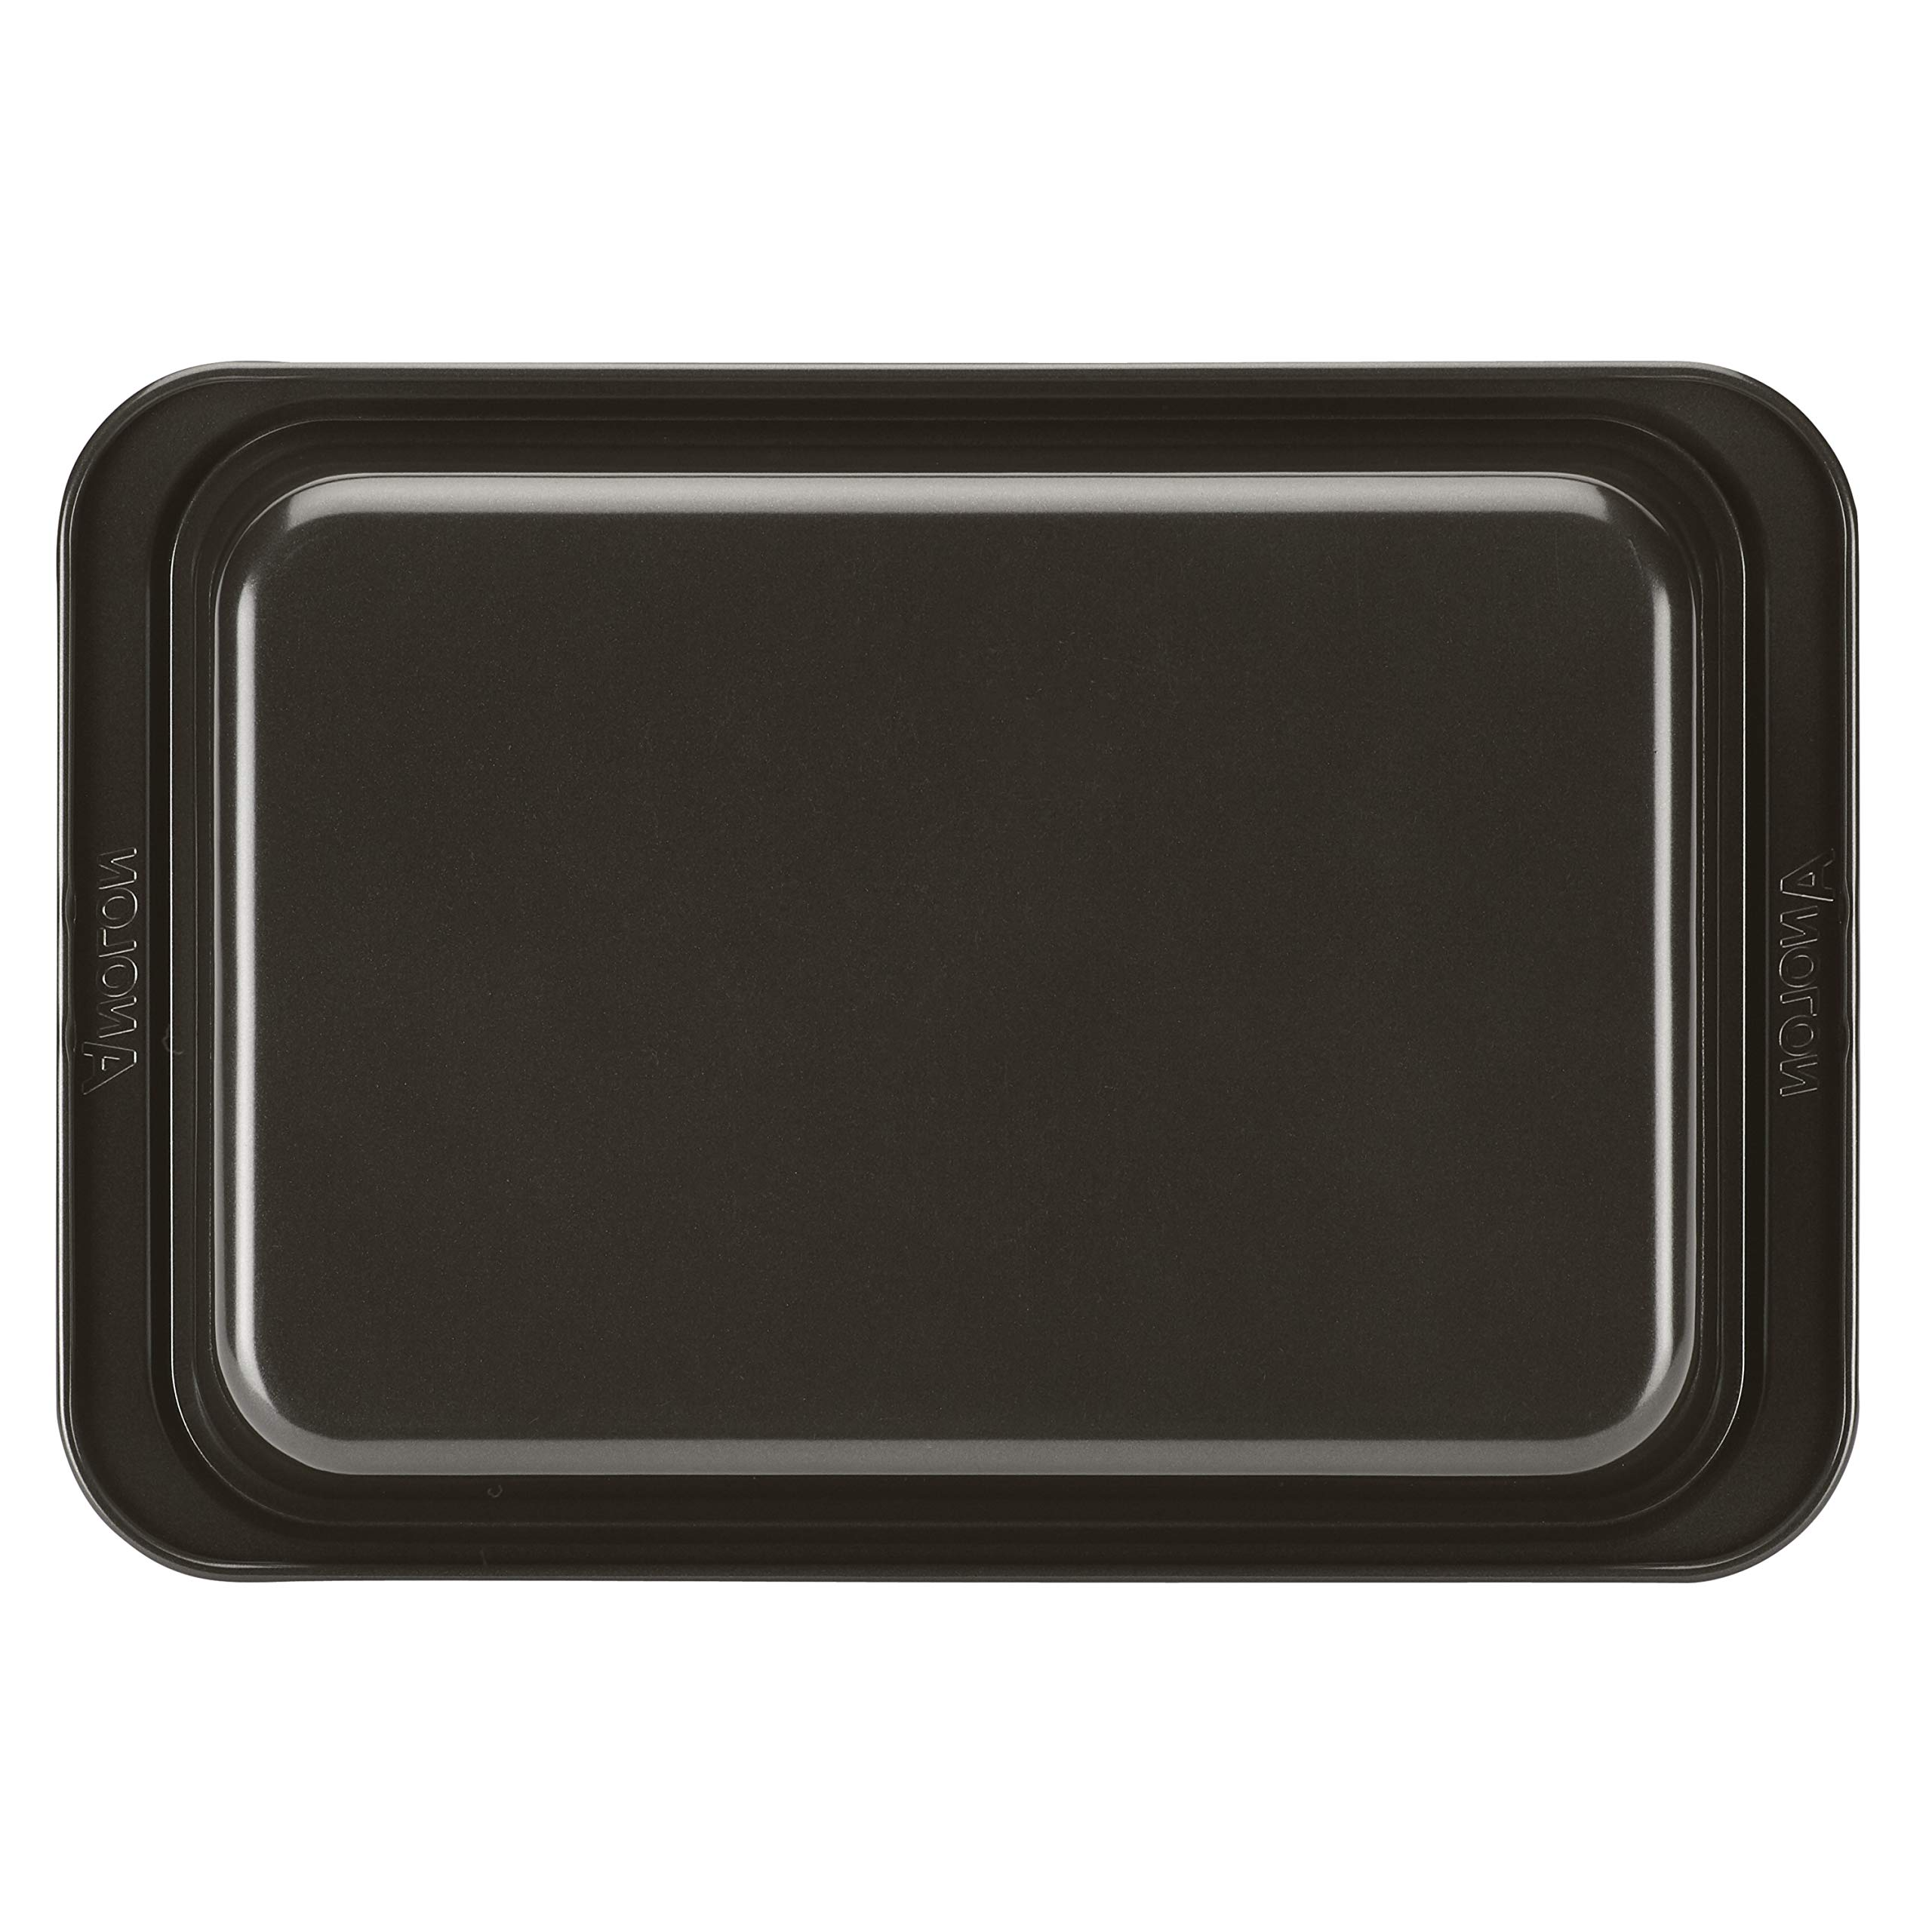 Anolon Eminence Nonstick Bakeware 9-Inch x 13-Inch Rectangular Cake Pan, Onyx with Umber Interior by Anolon (Image #3)